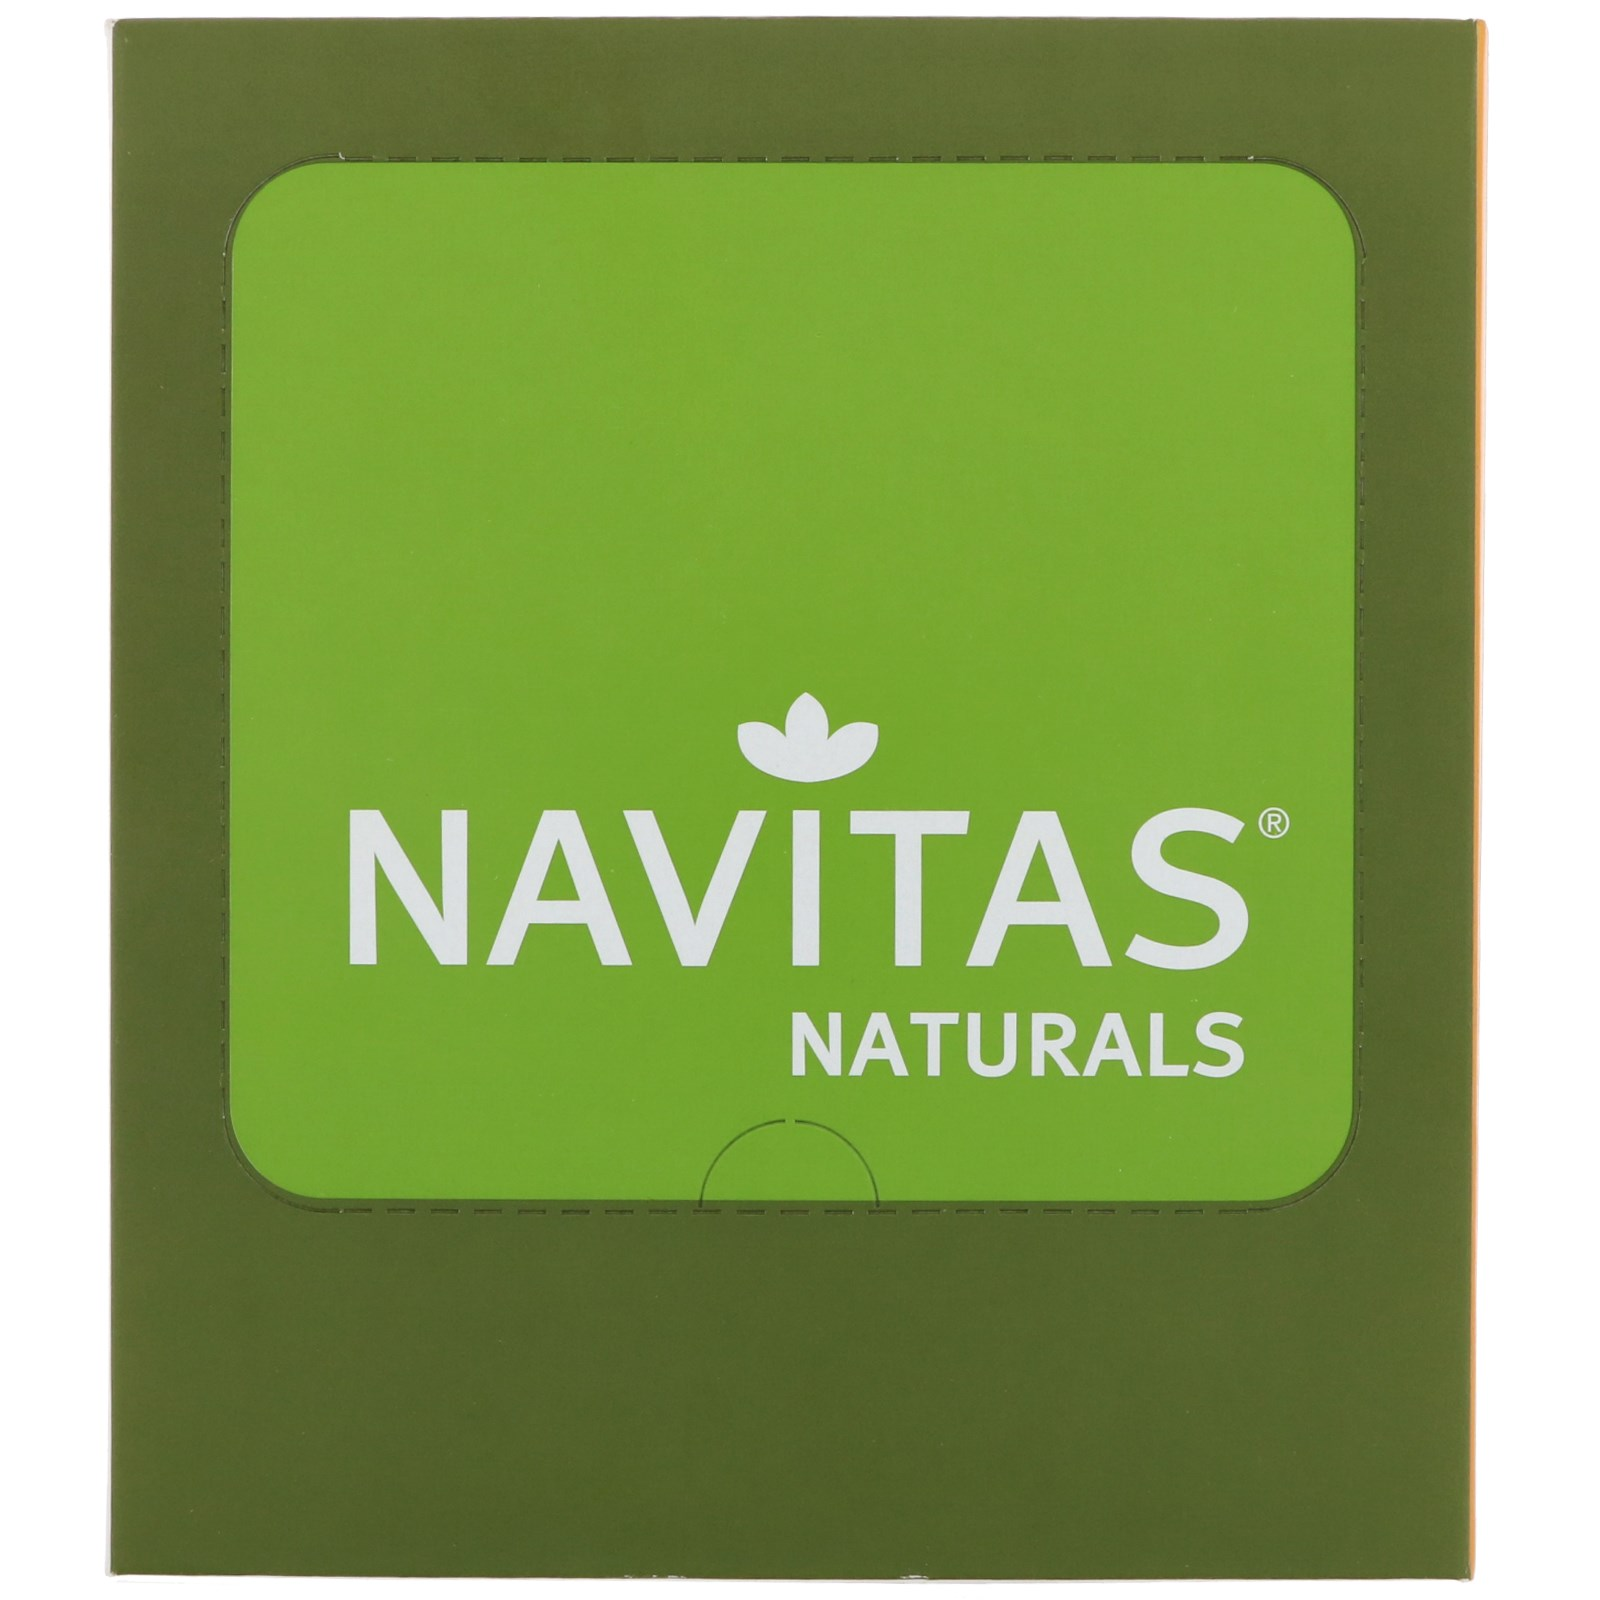 Navitas Organics, Superfood + Hemp, Hemp Peanut, 12 Bars, 16.8 oz (480 g) Each